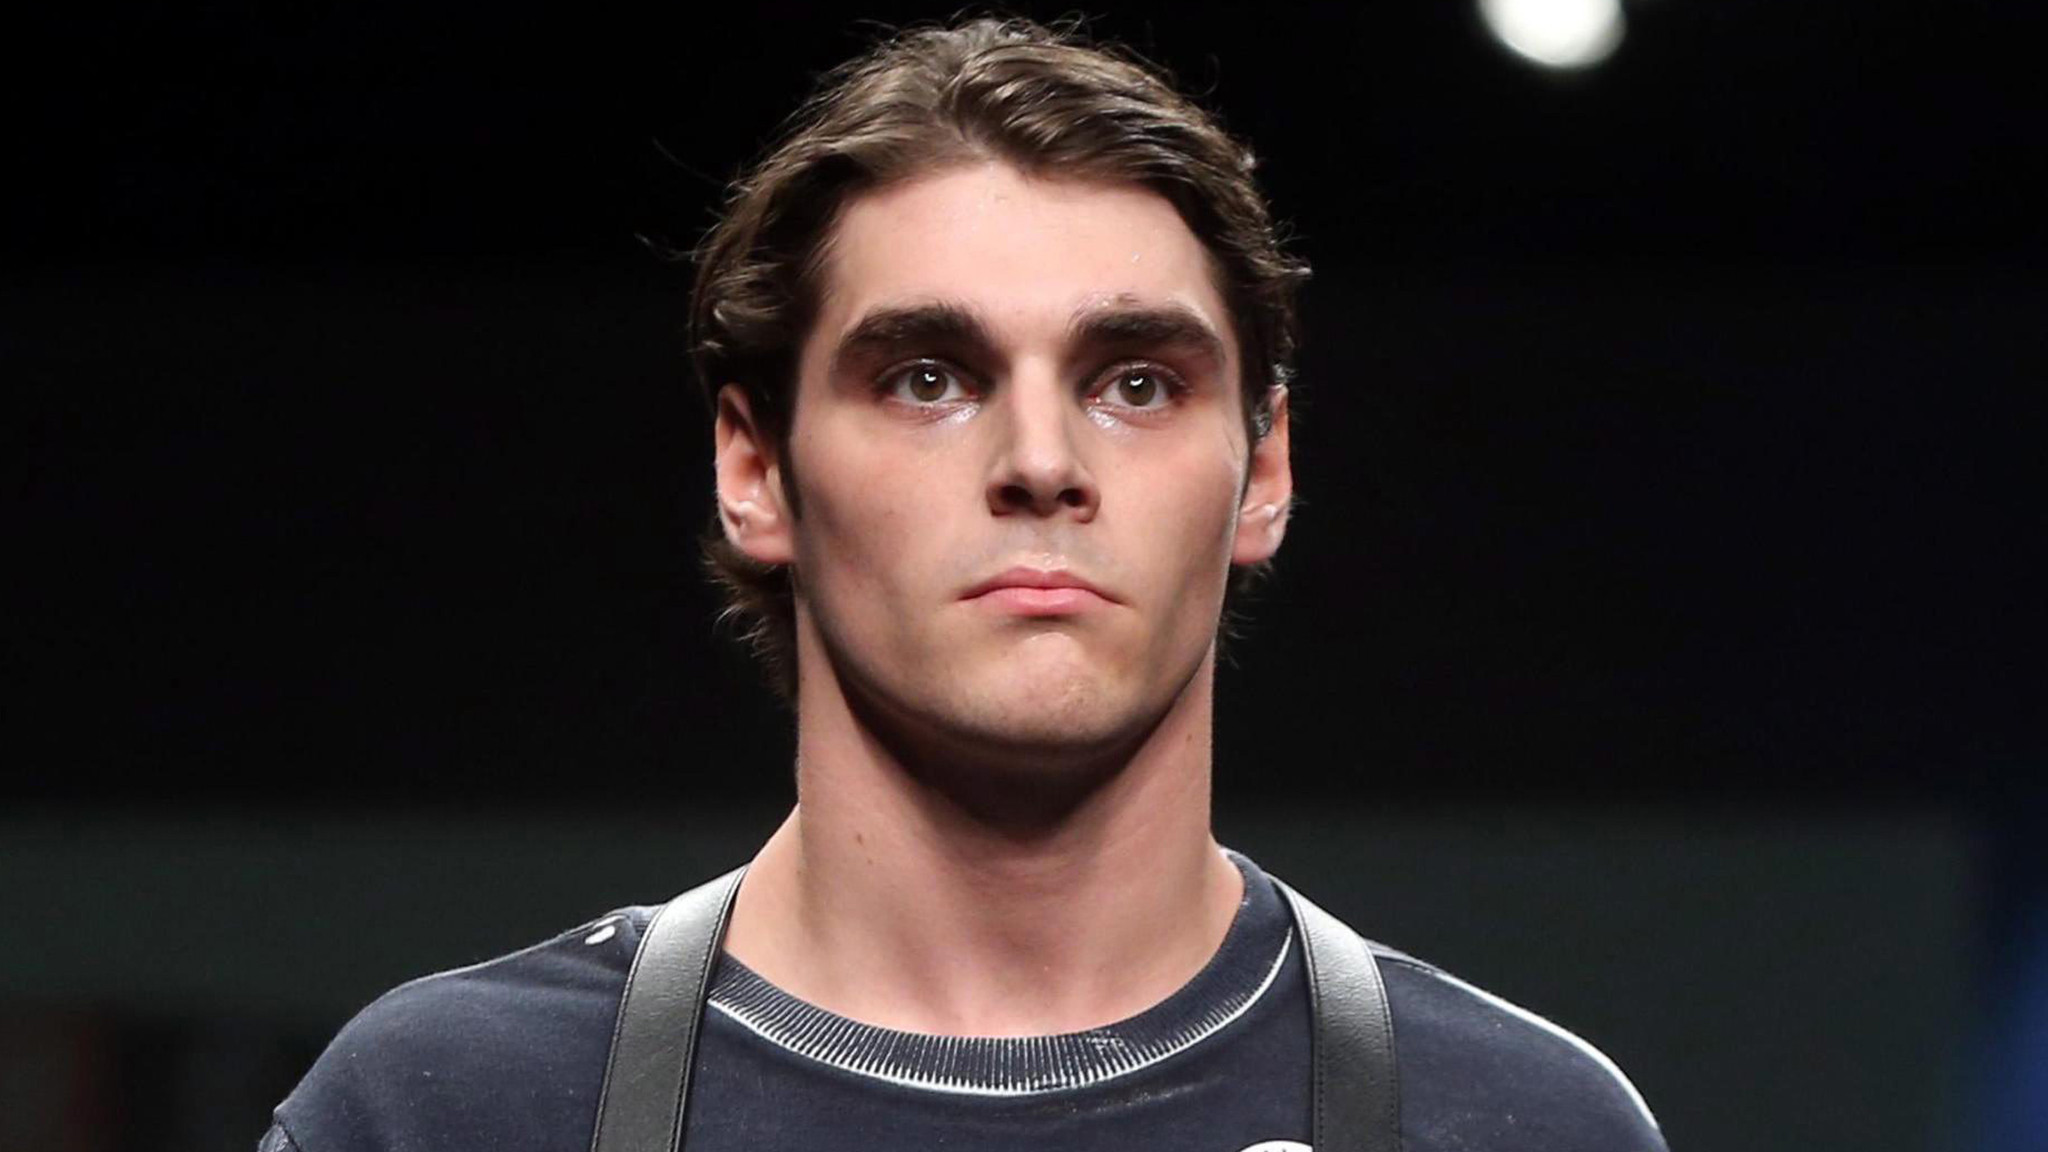 rj mitte makes his catwalk debut in milan light years away from